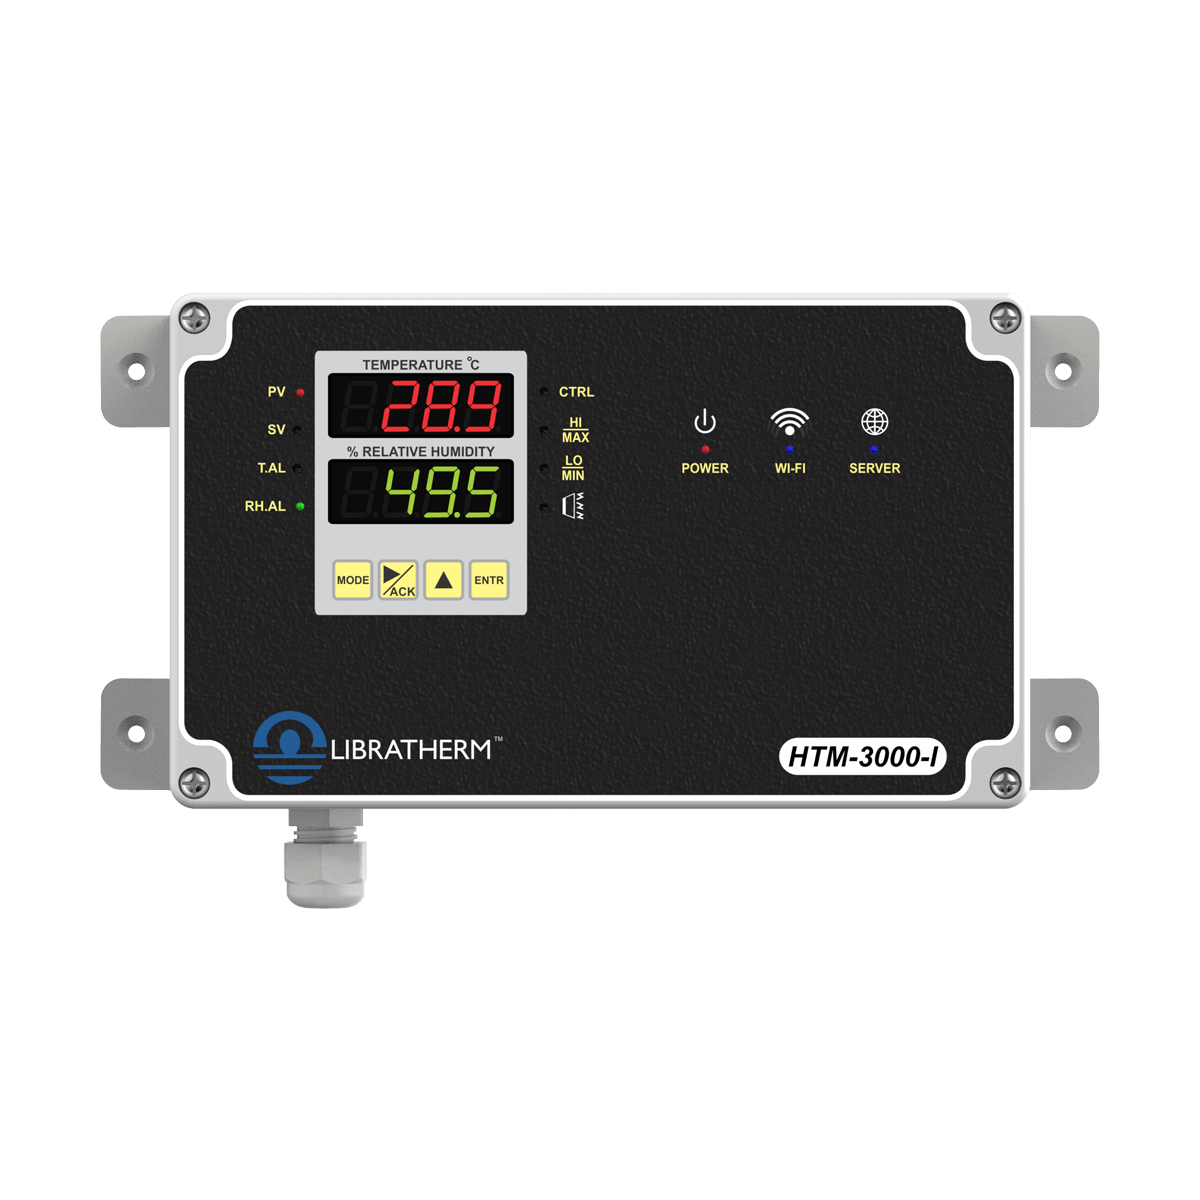 temperature-and-humidity-digital-indicator-with-wi-fi-htm-3000-i-front